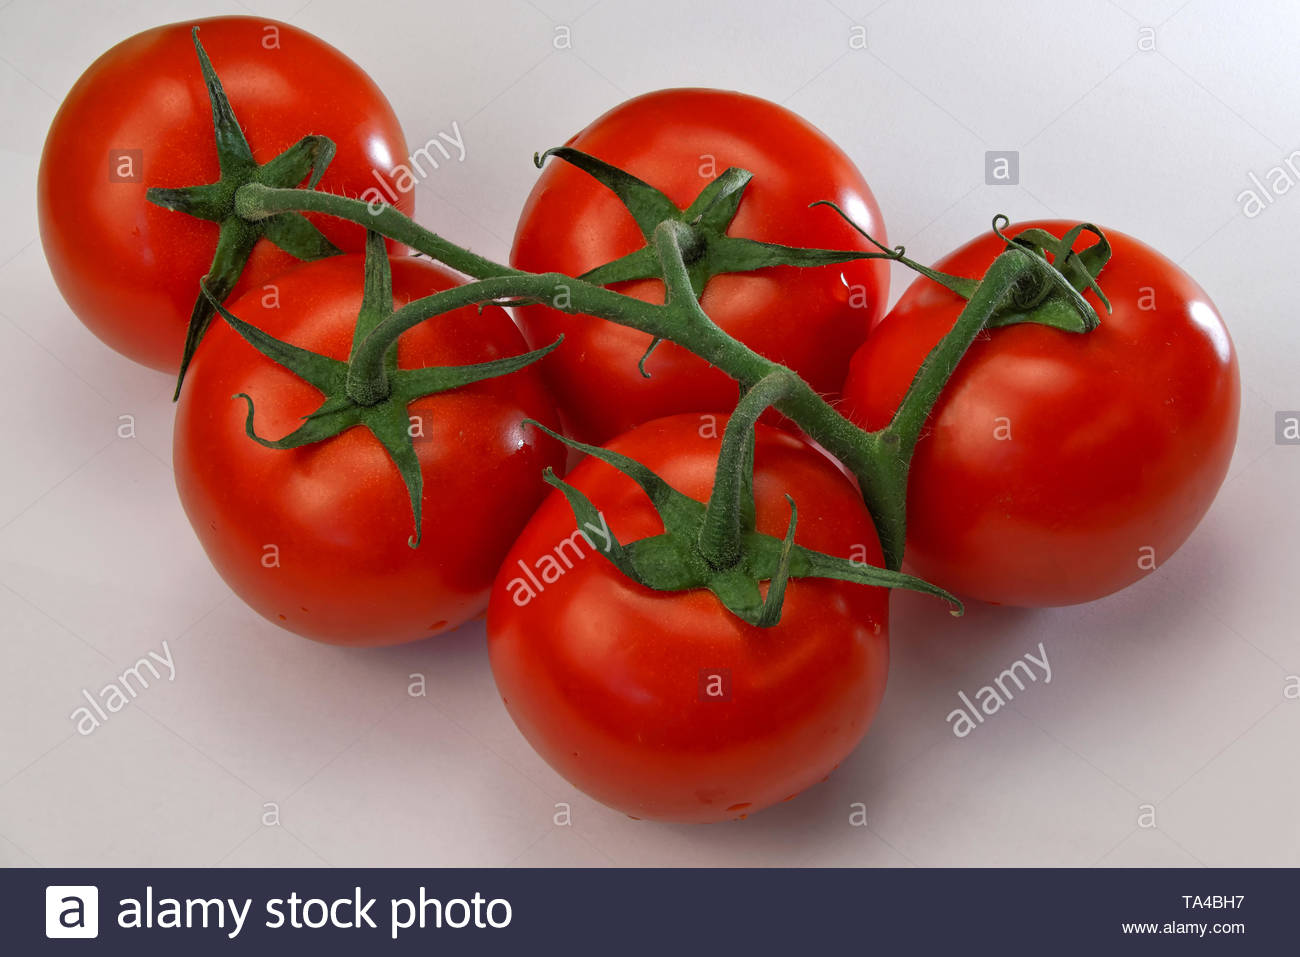 Five red ripe tomatoes on a twig on a white background close-up - Stock Image